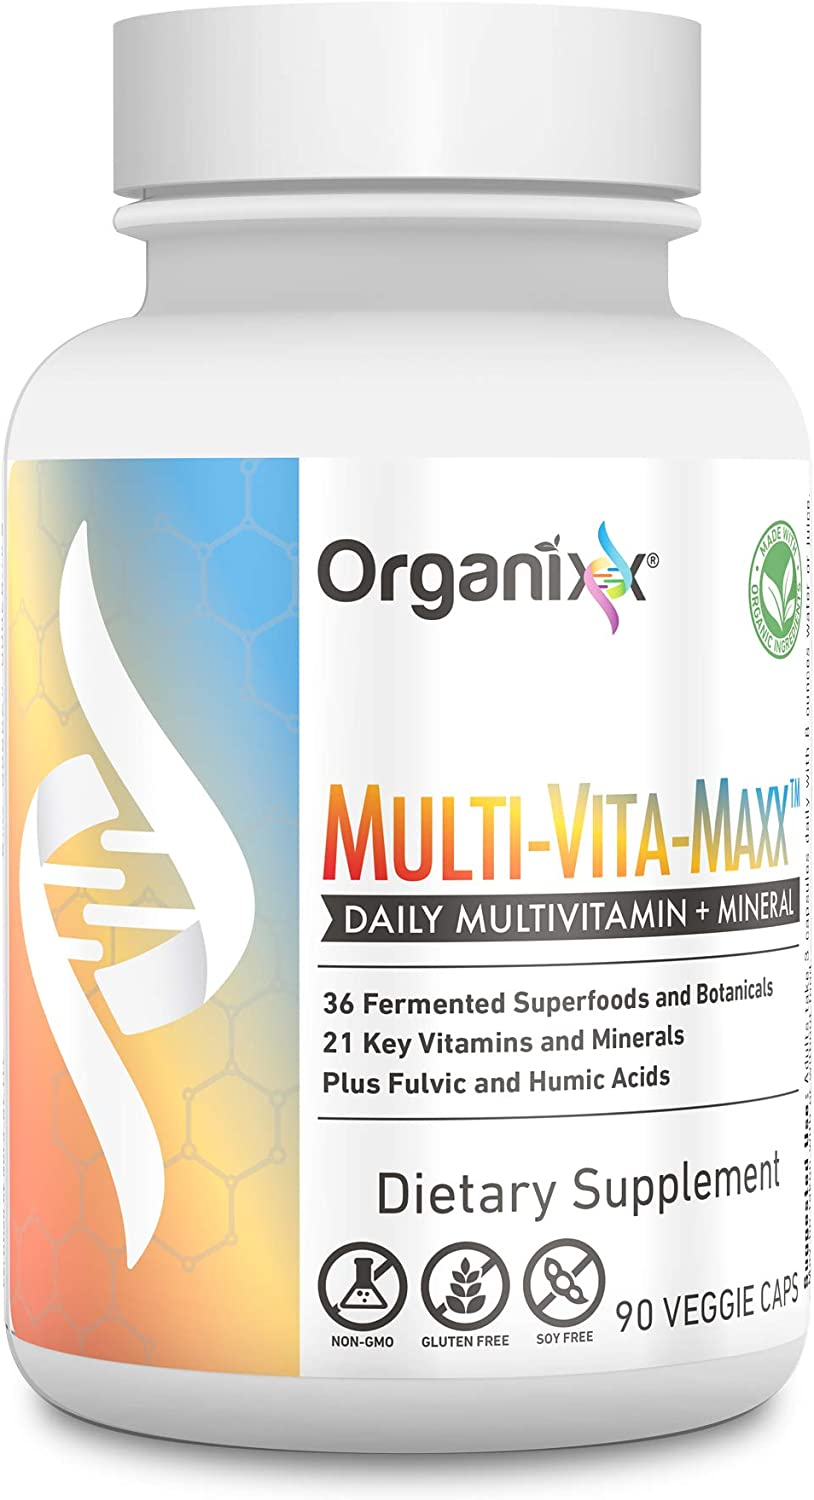 Organixx – Multi-Vita-Maxx – Whole Foods Multivitamin for Men and Women – B12, Calcium, Vitamin D, Vitamin C and More – Plus 36 Superfoods 90 Capsules